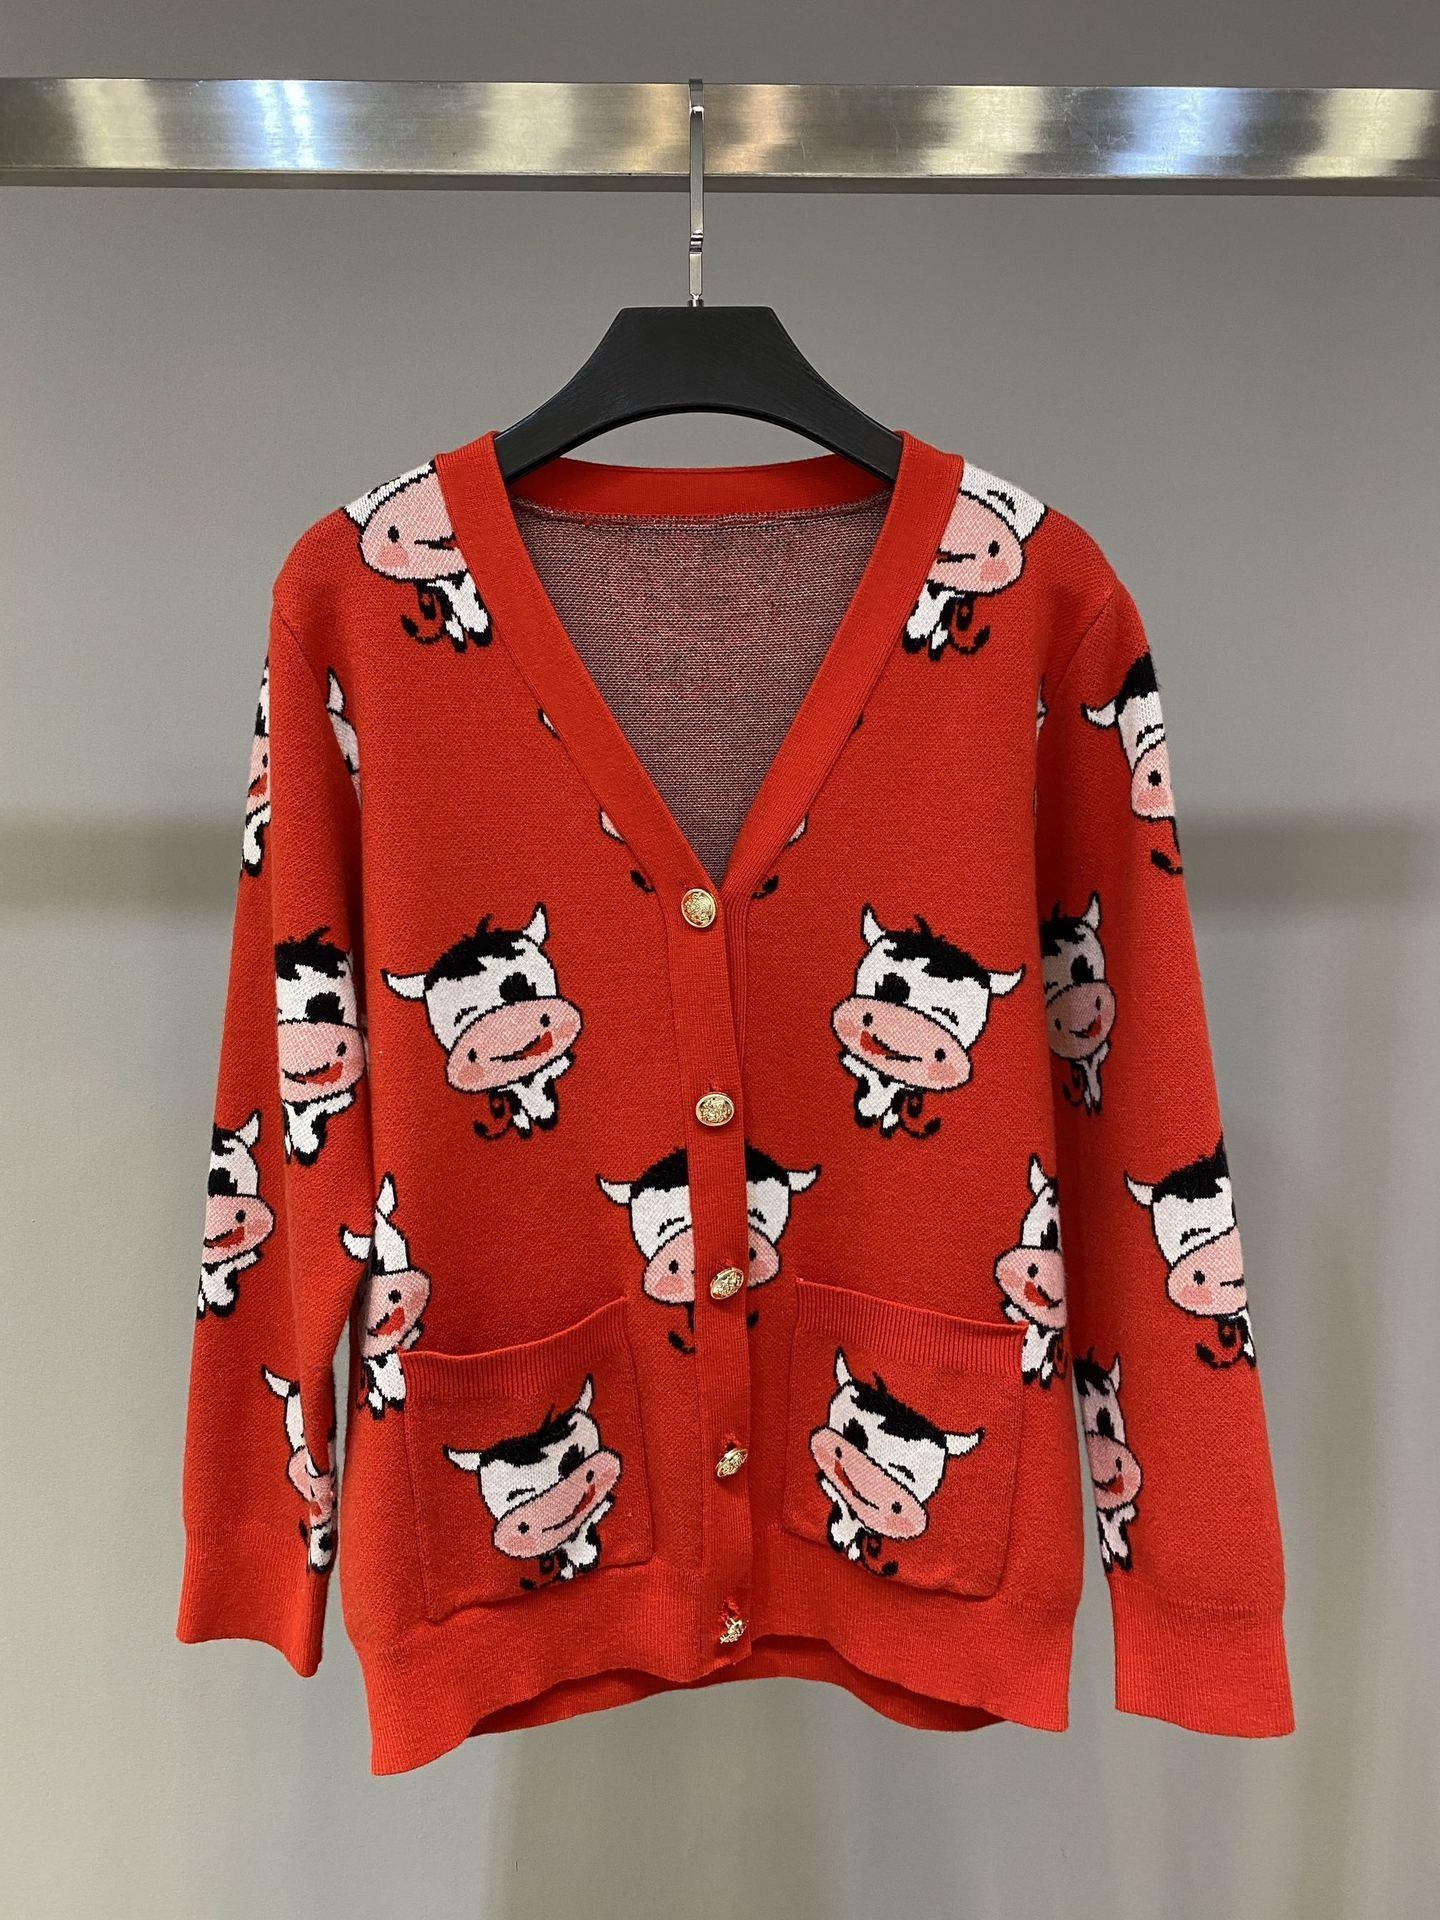 2021 early spring new year's day full of cow red V-neck knitted sweater cardigan coat